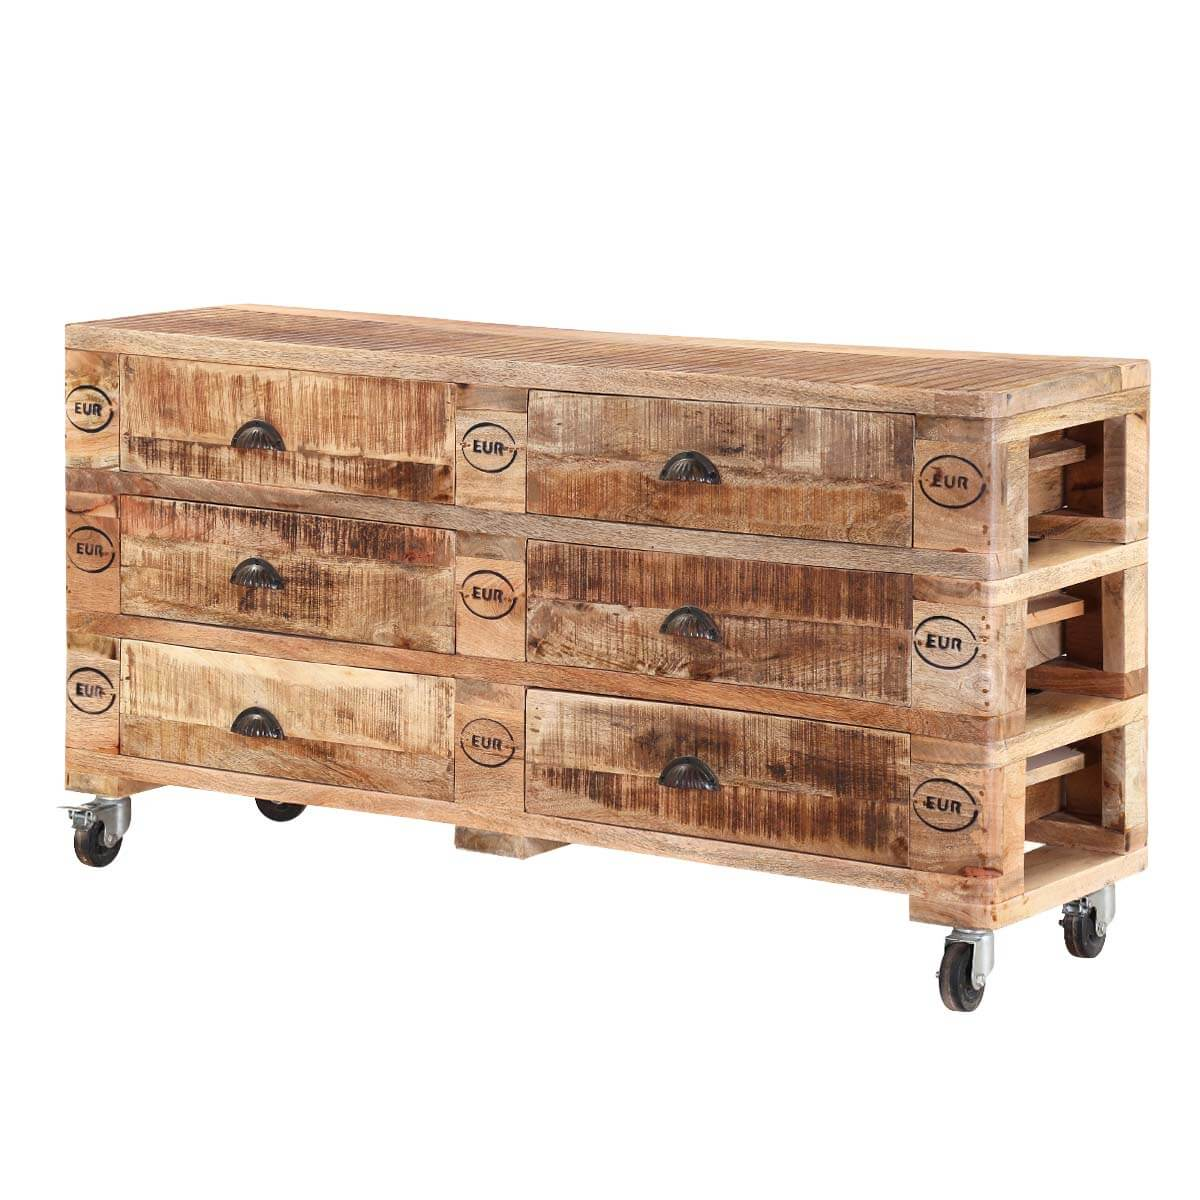 Rustic Industrial Mango Wood 6 Drawers Bedroom Dresser With Wheels